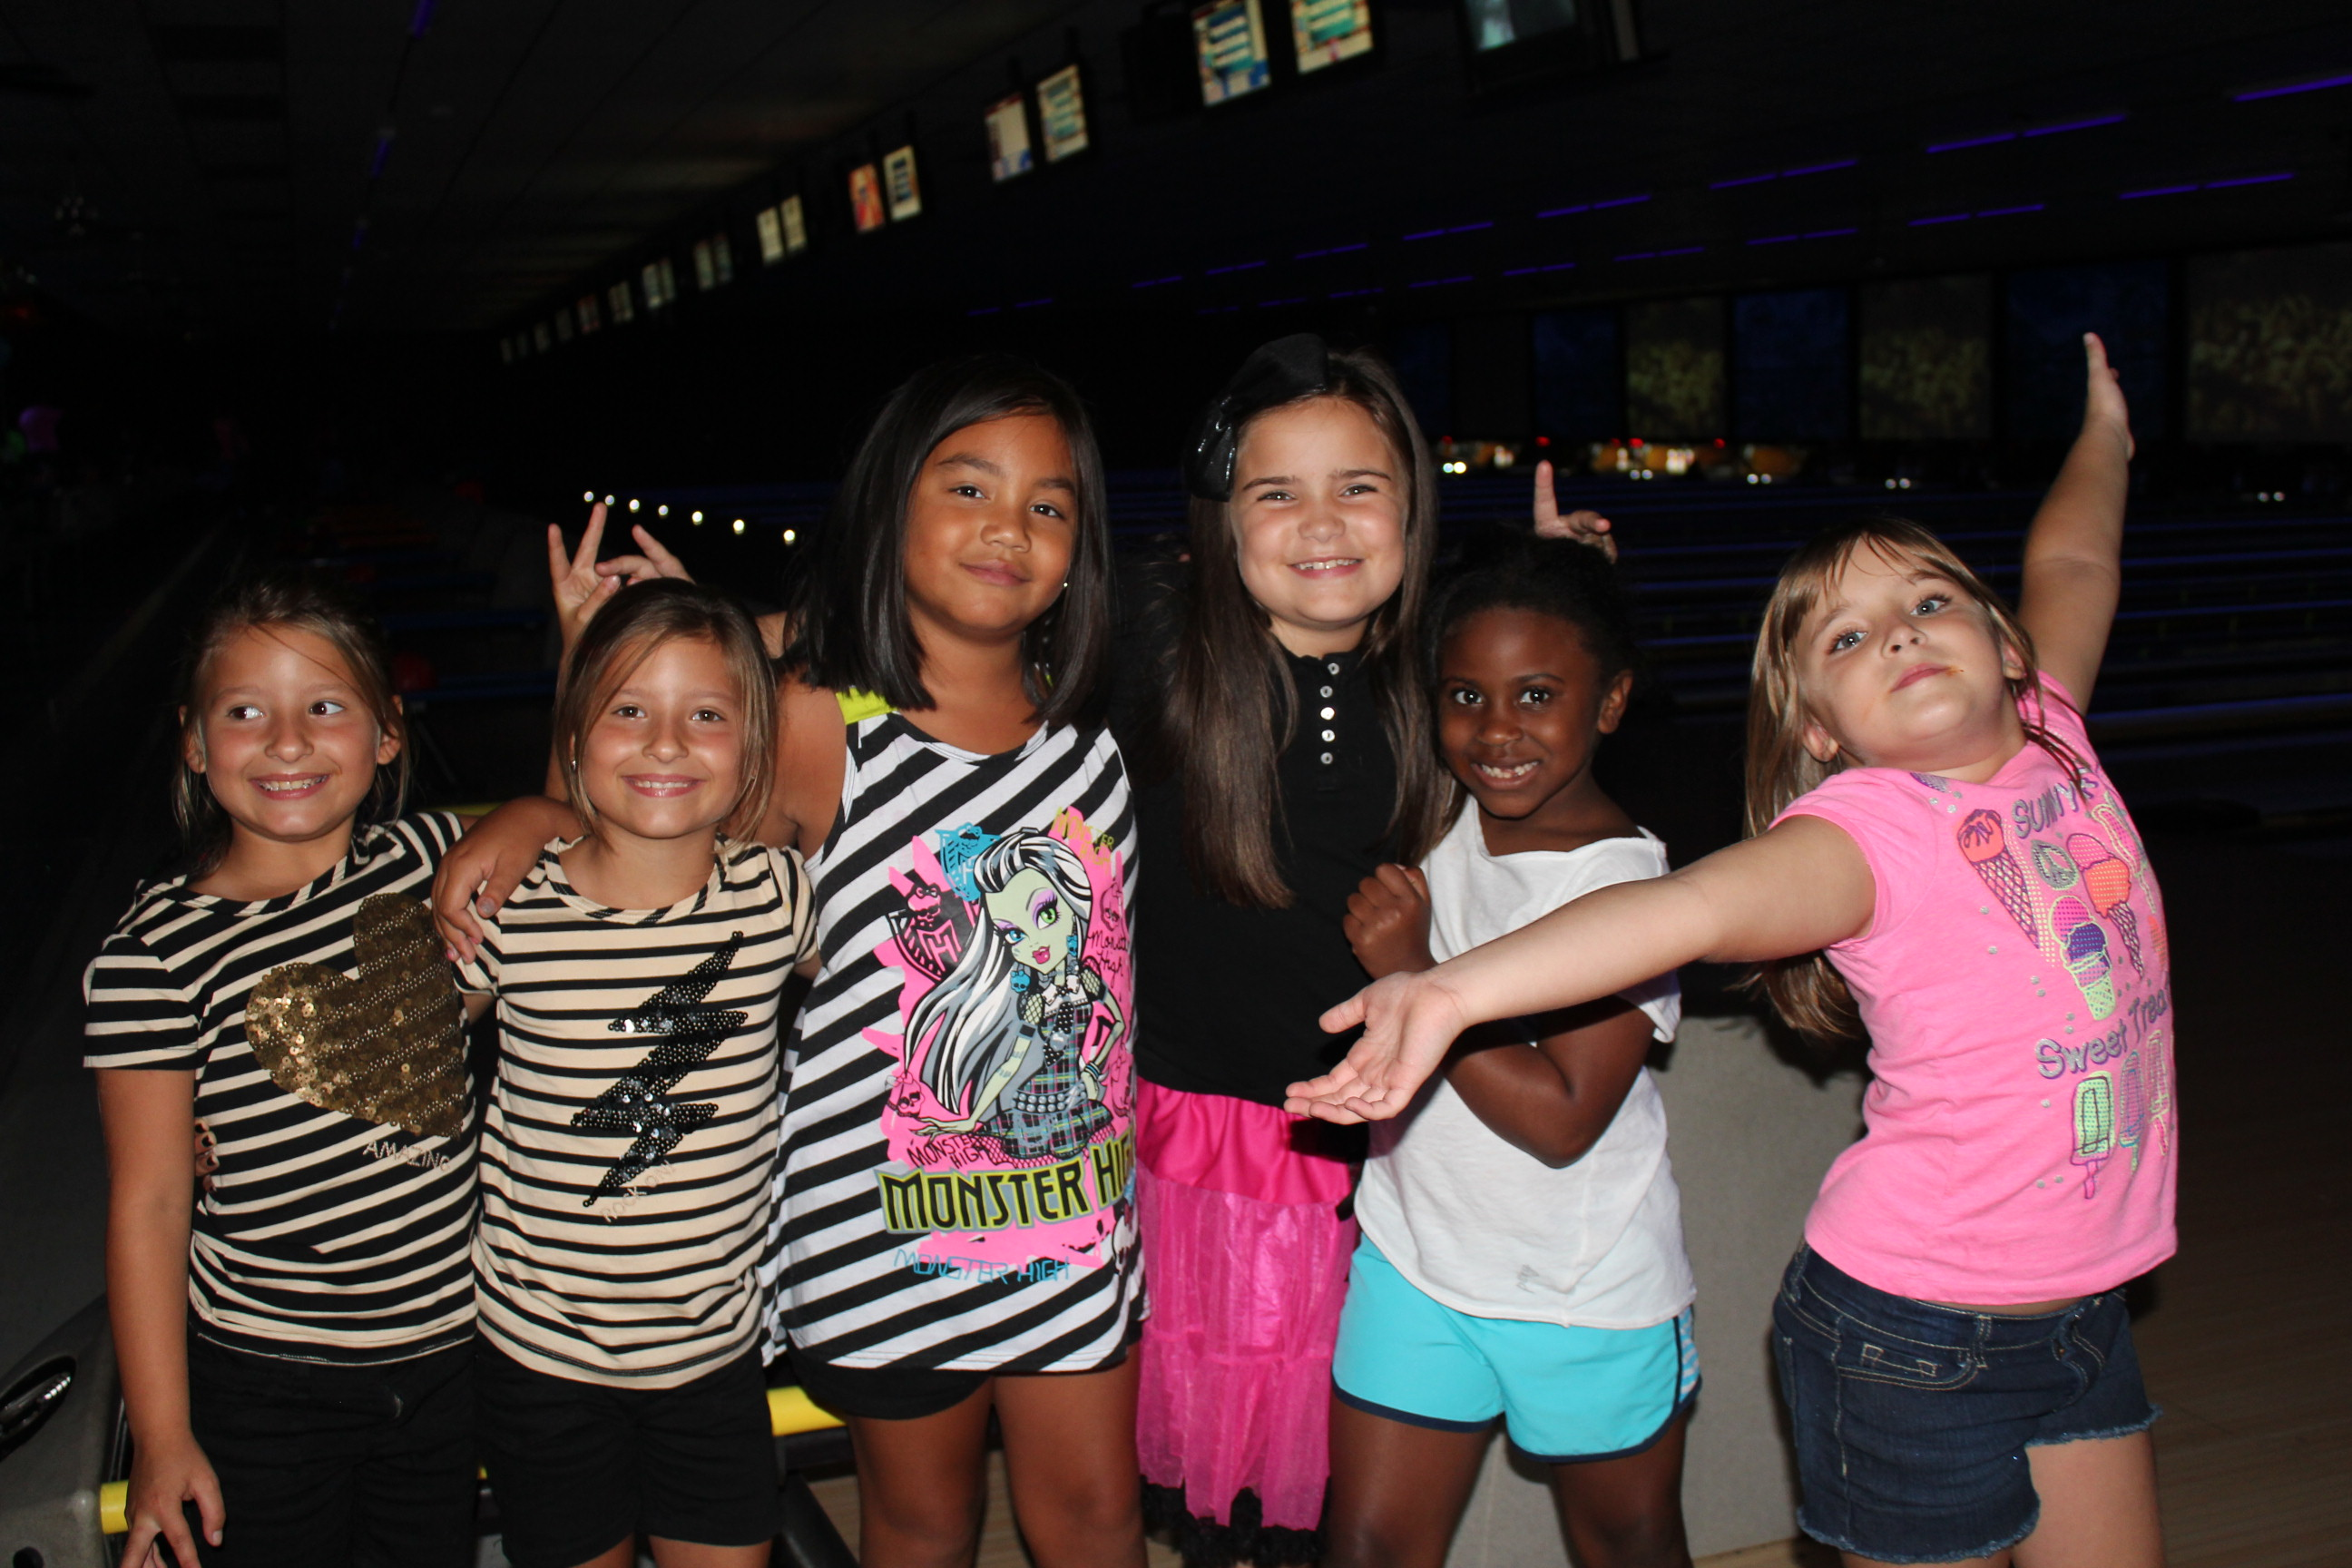 Rylie's Friends, bday 2013